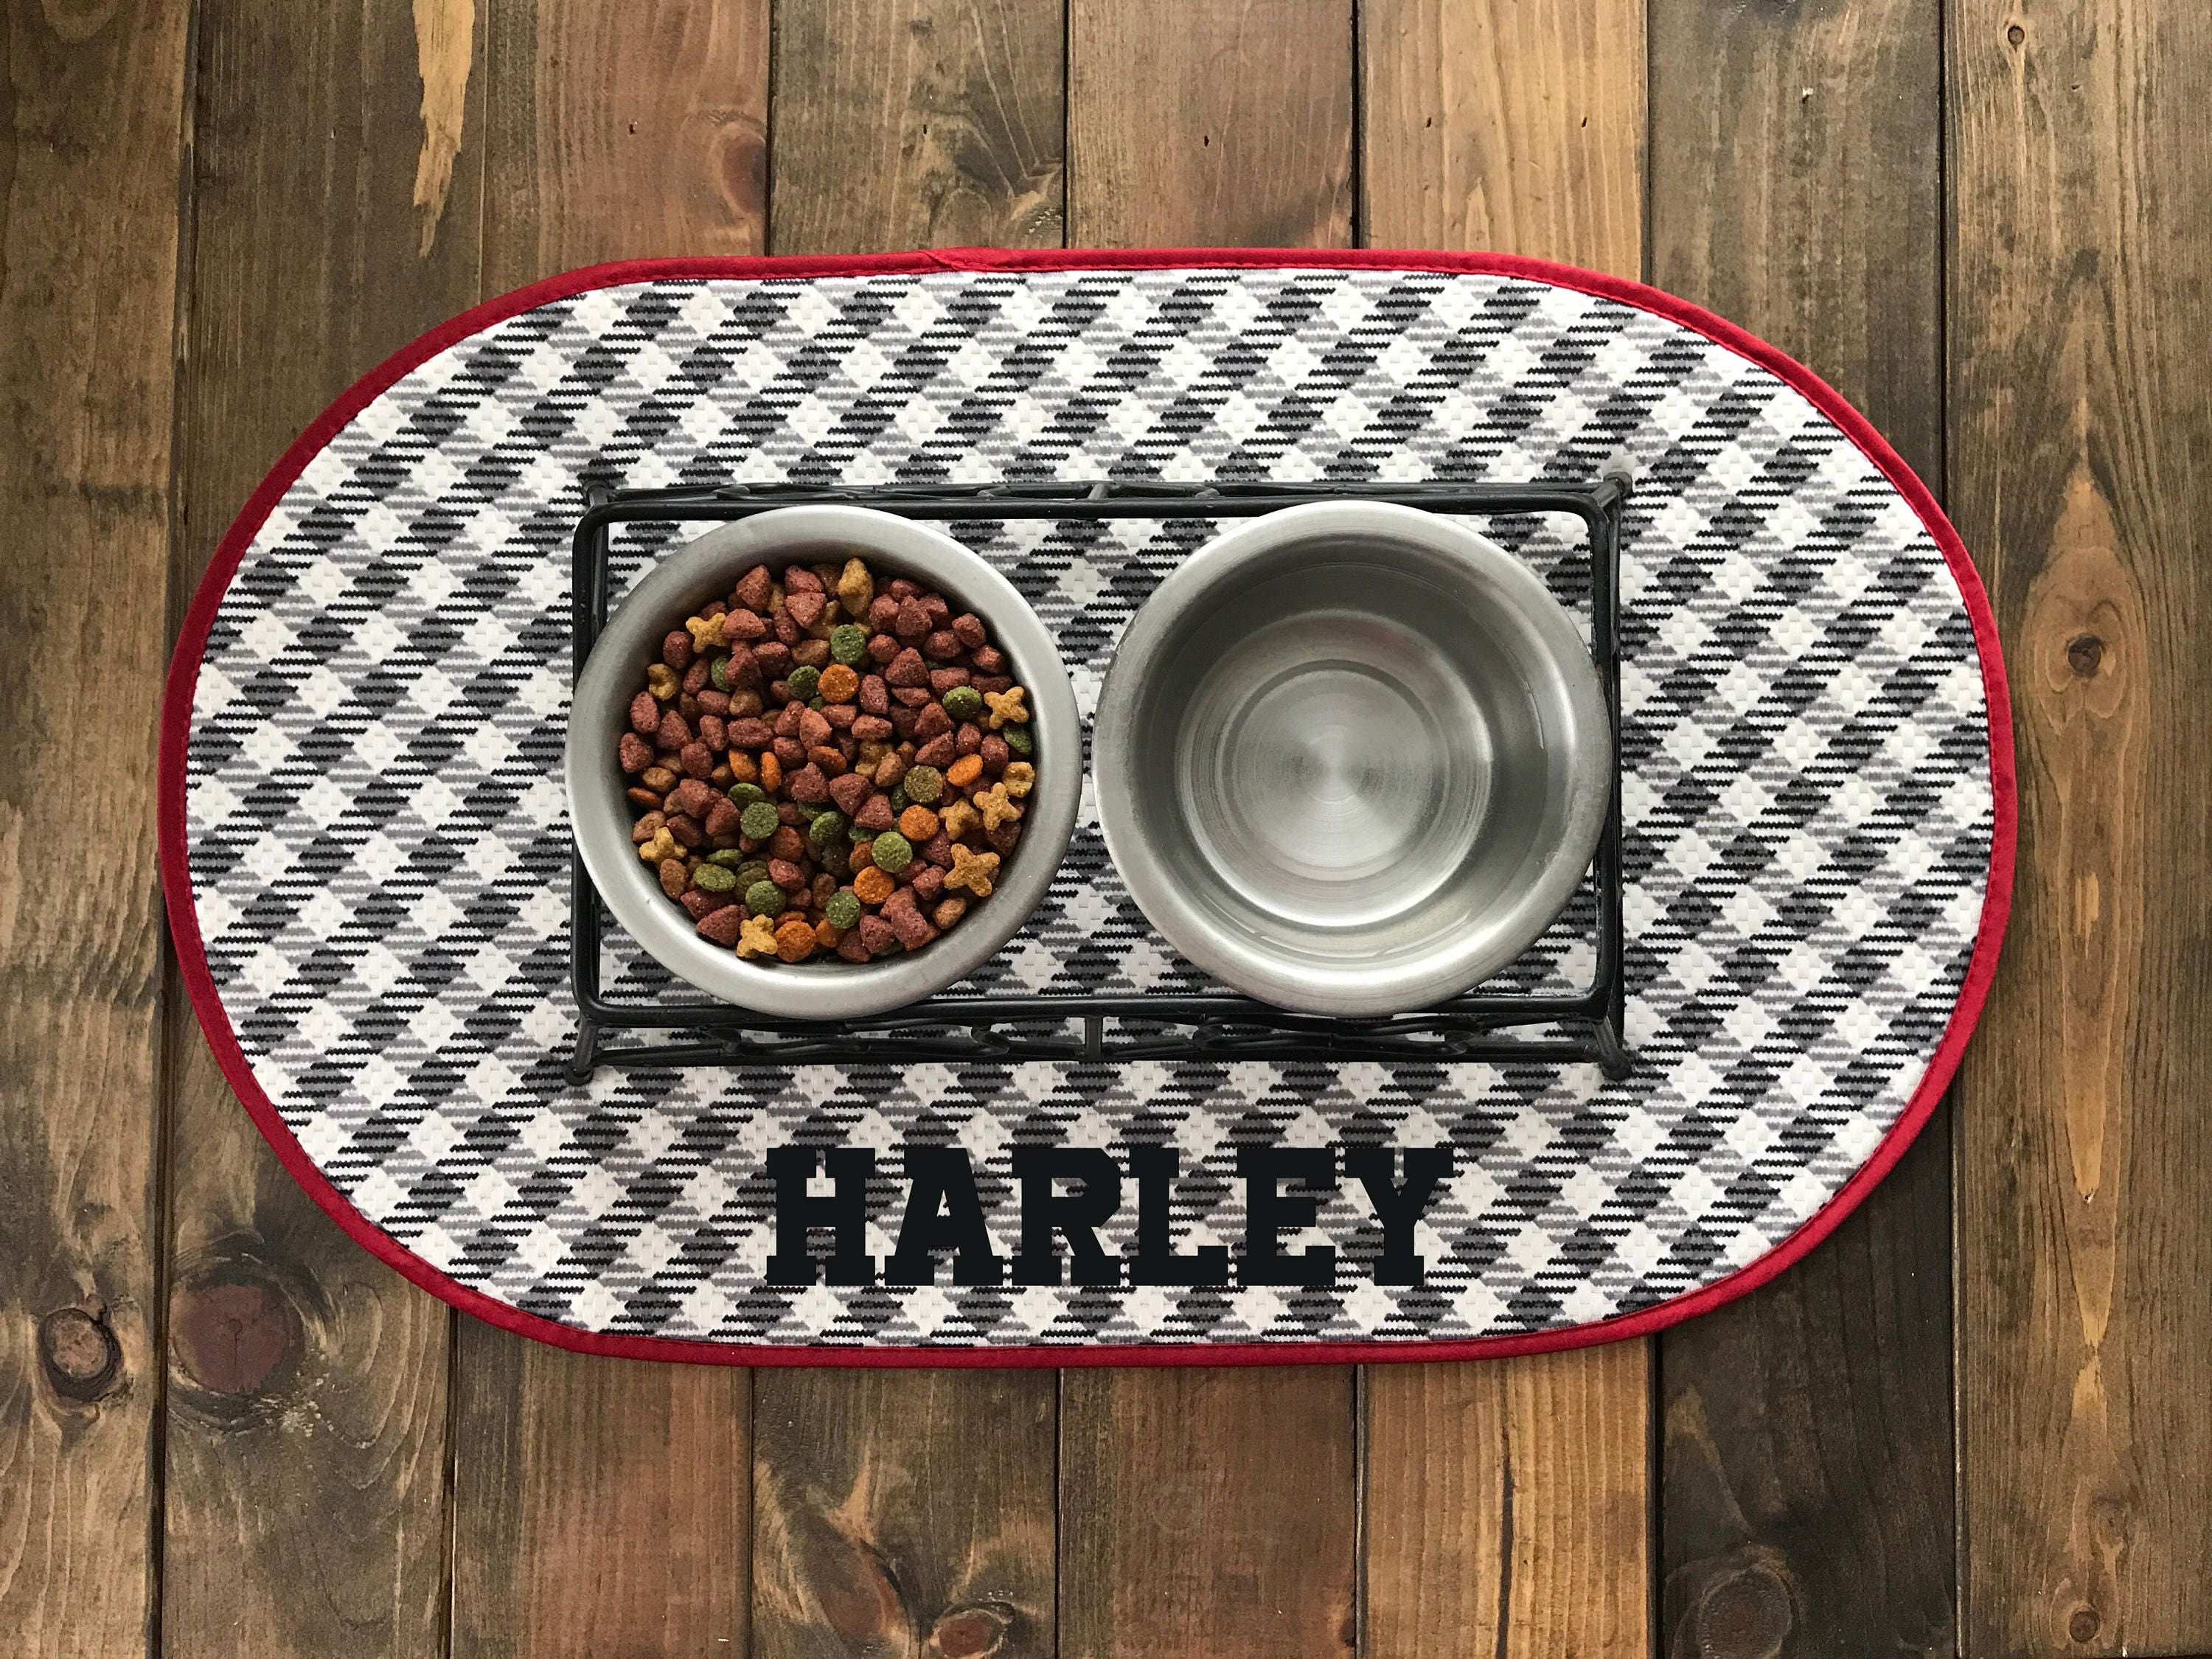 mats a make pet step mat bowl to canvas how with pictures steps